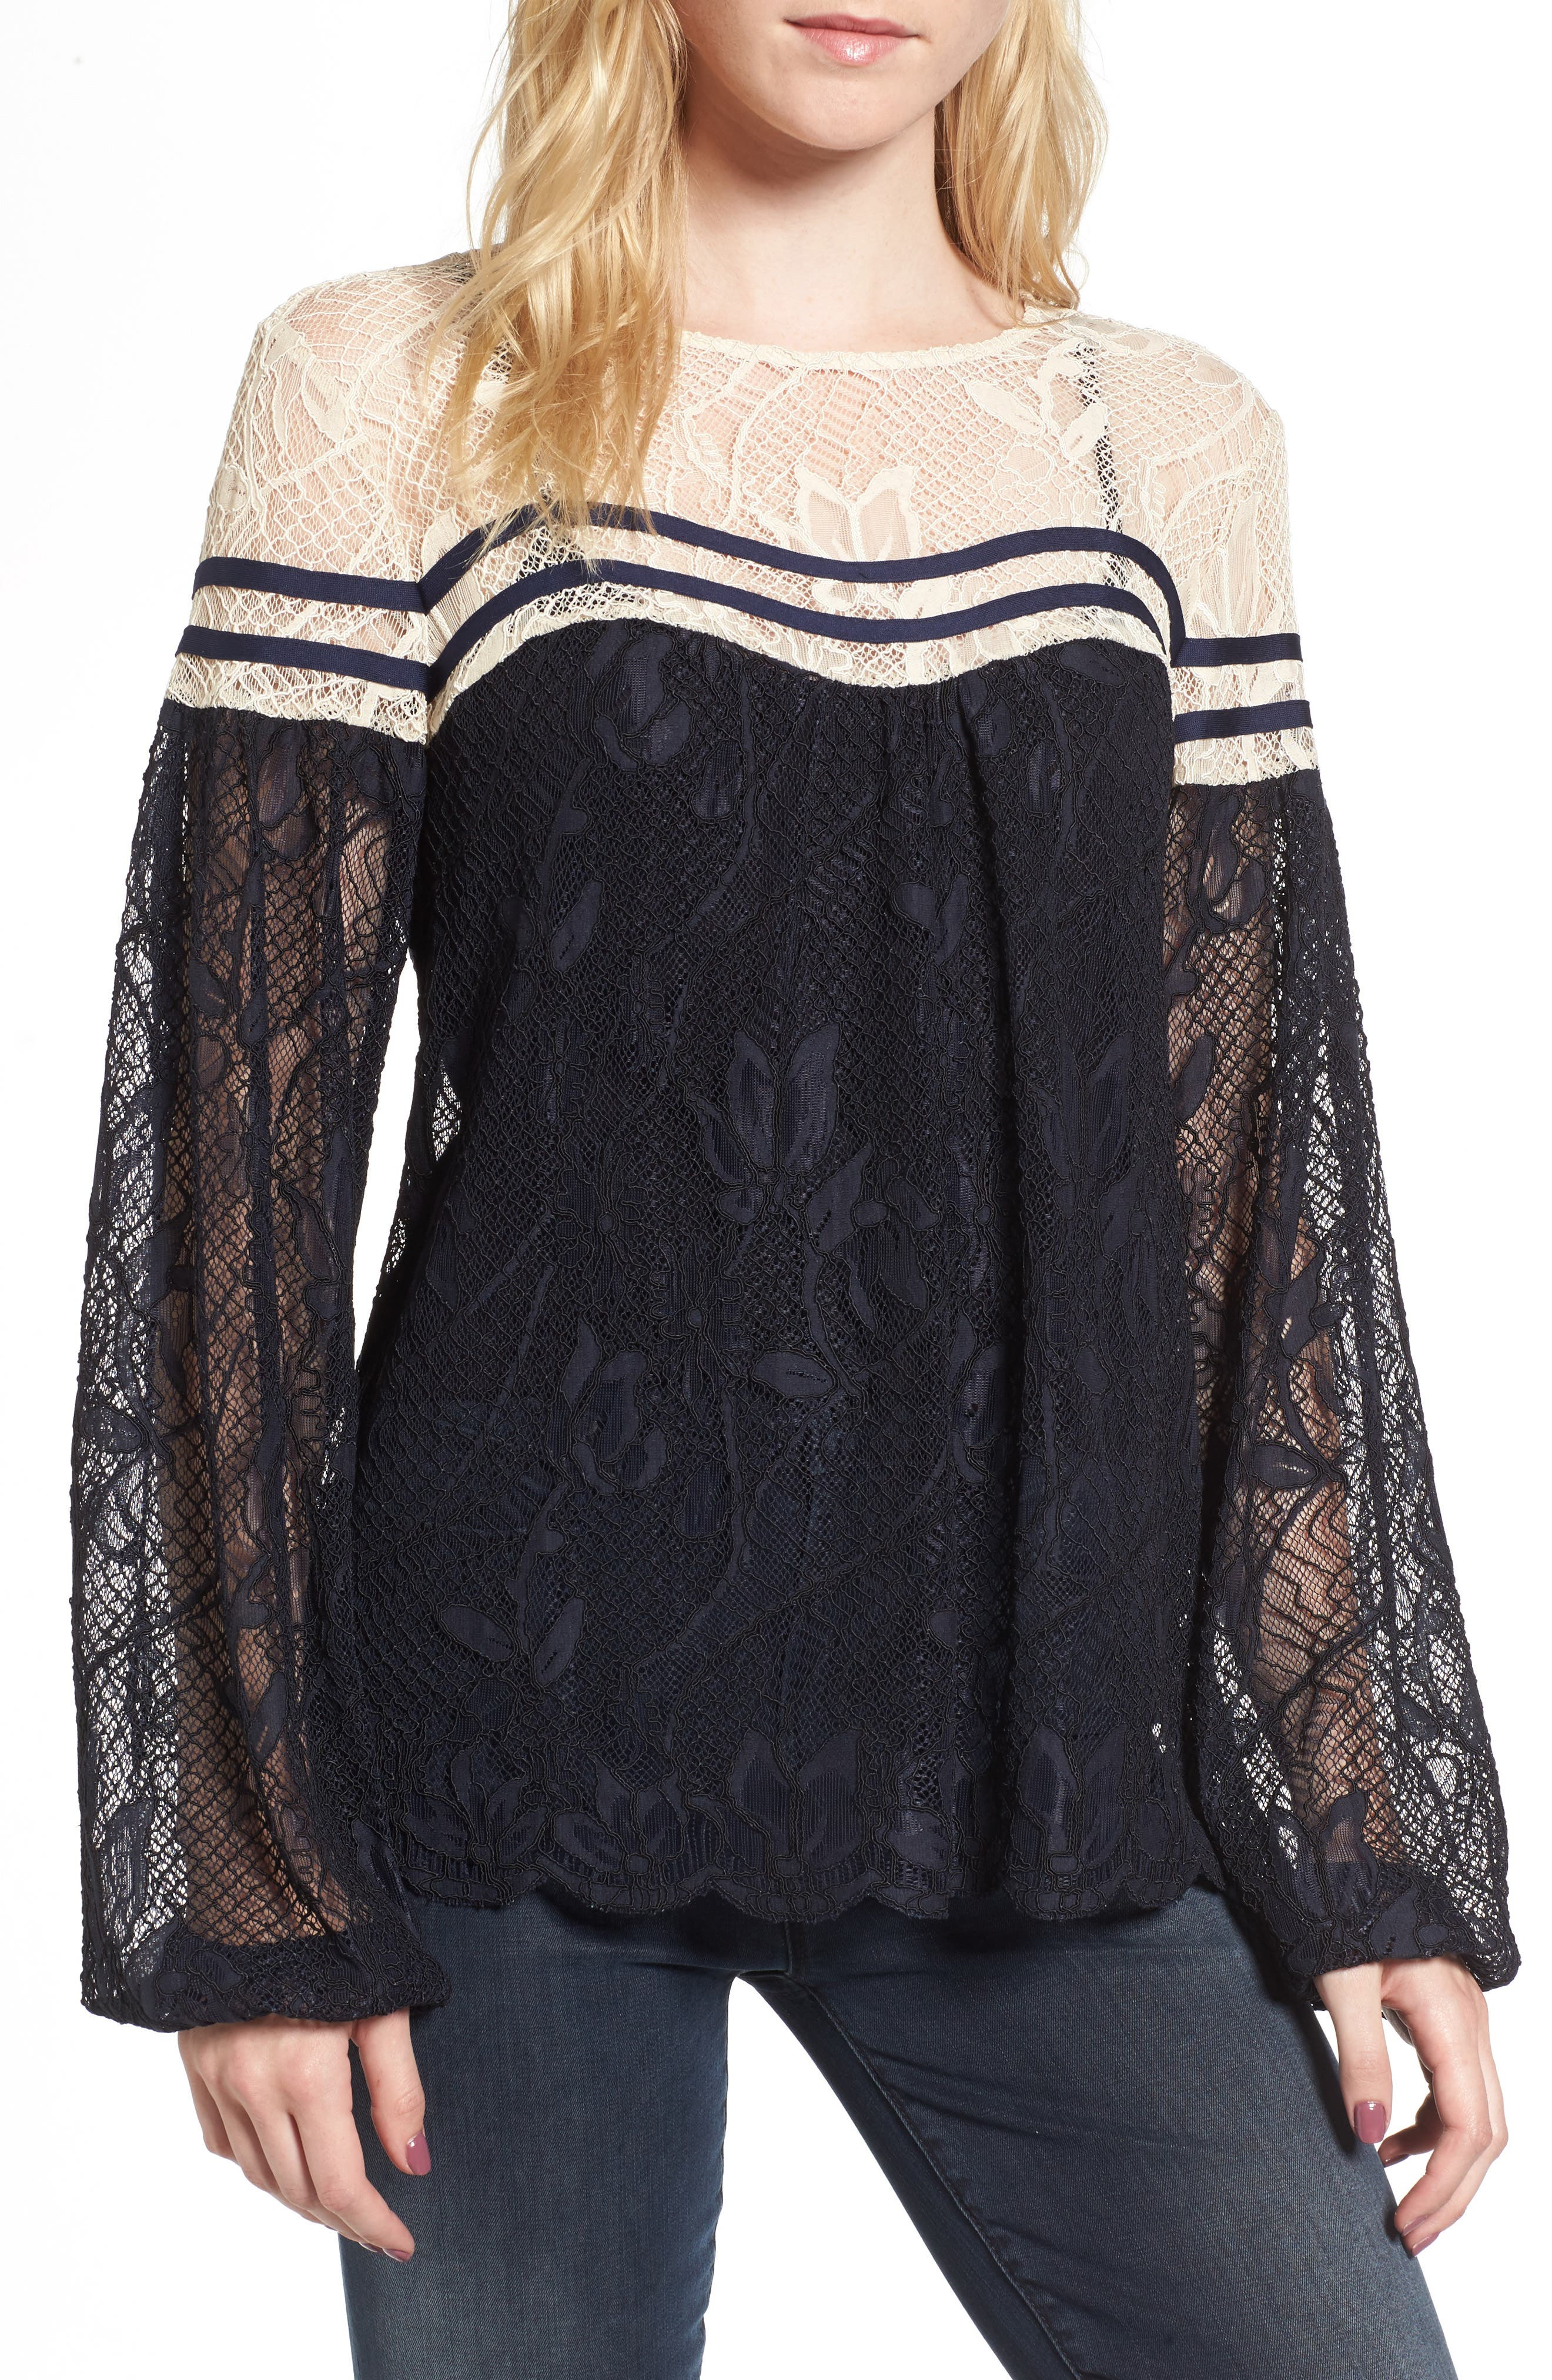 Alternate Image 1 Selected - Chelsea28 Lace Top